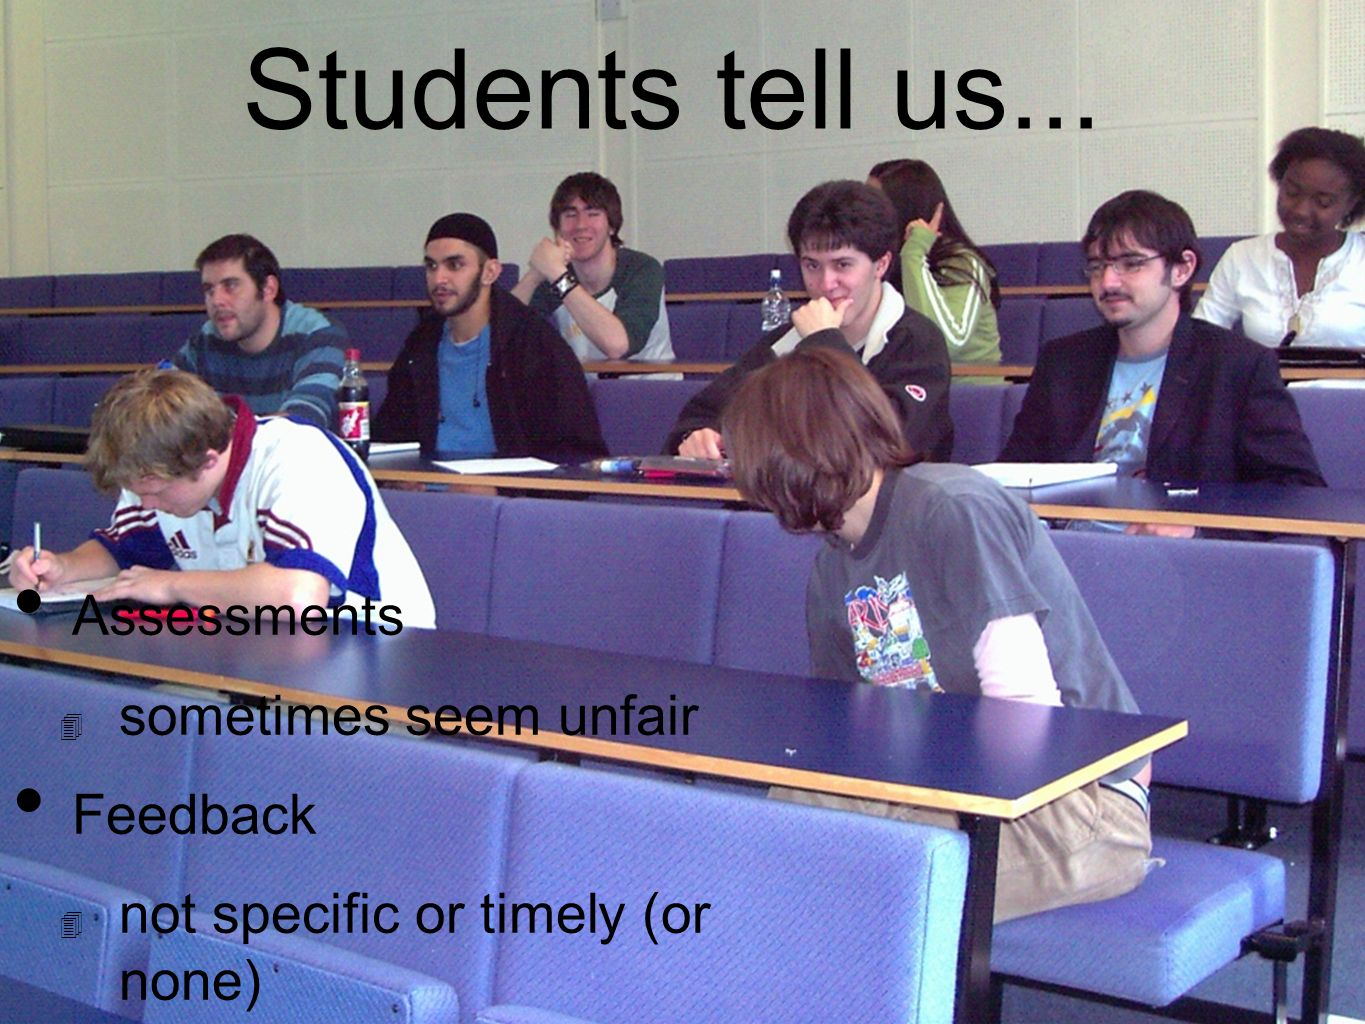 Students tell us... Assessments sometimes seem unfair Feedback not specific or timely (or none)